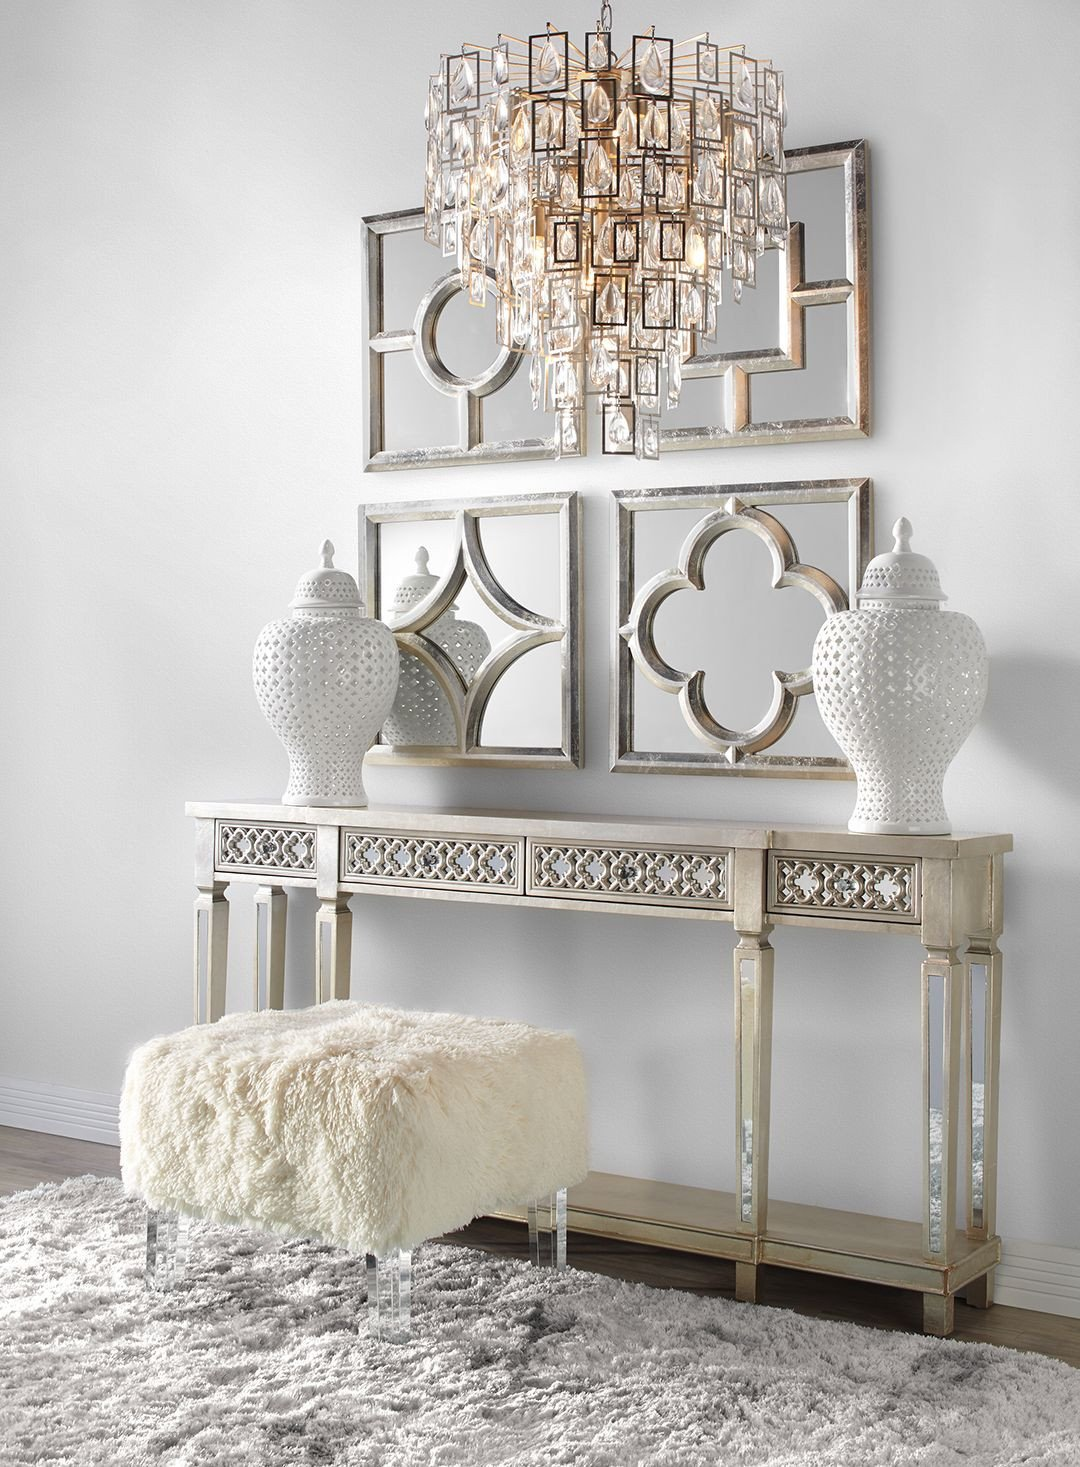 Entrance Decor Ideas for Home Elegant Trend Report Filigree March 2017 Fashion for the Home